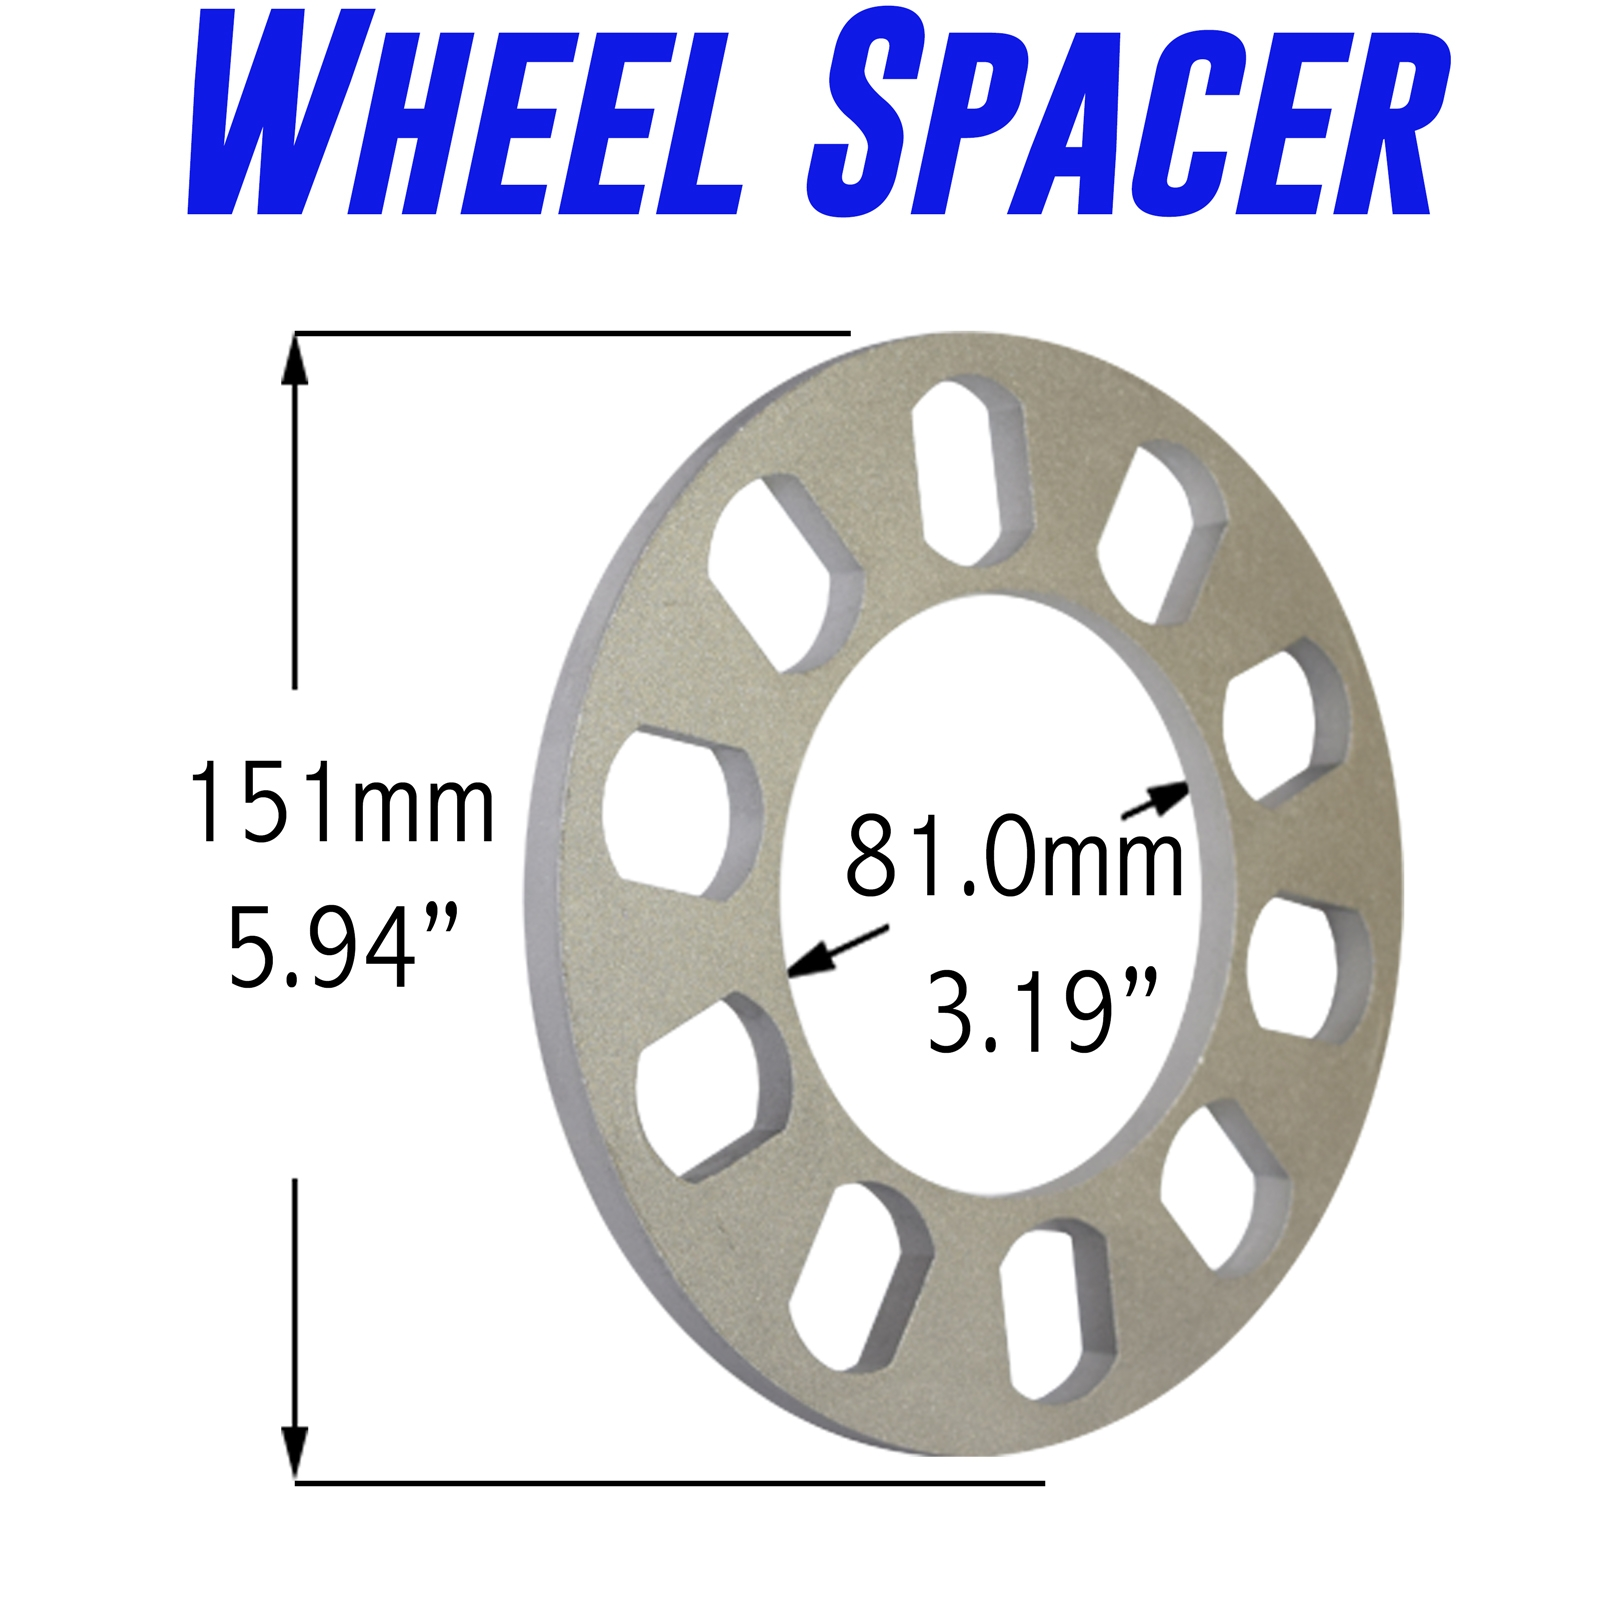 Details about 2 PC 8mm Wheel spacers | 5/16